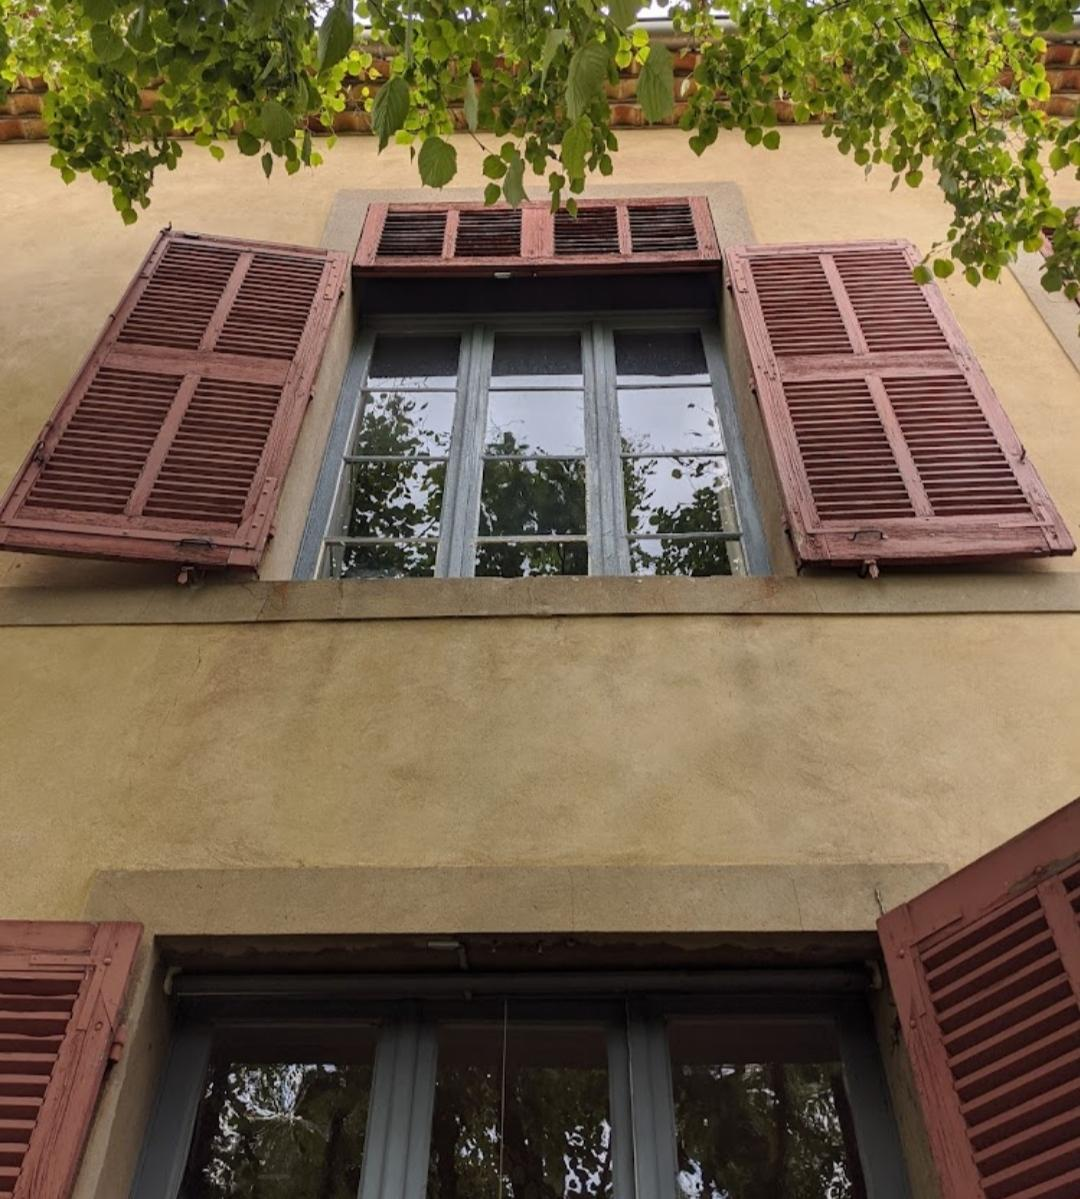 """The """"persianes mallorquines"""" (Mallorcan shutters) my husband was constantly referring to!"""